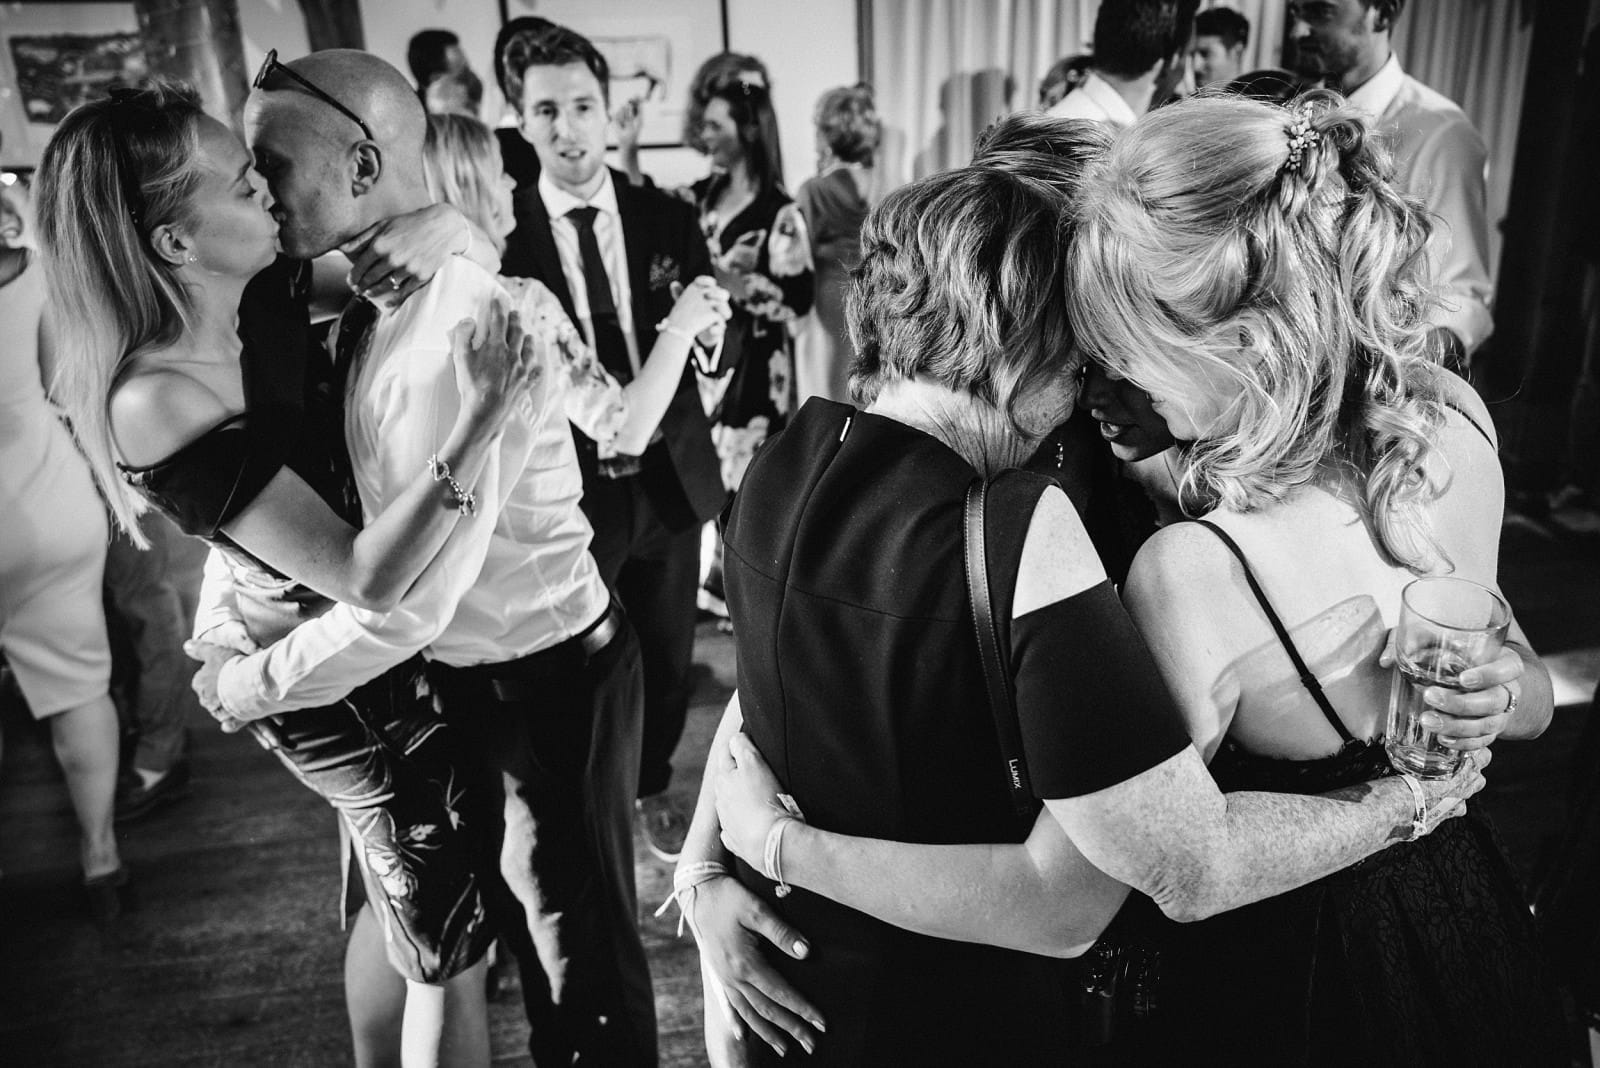 Hugs between wedding guests on the dancefloor at Nancarrow Barn